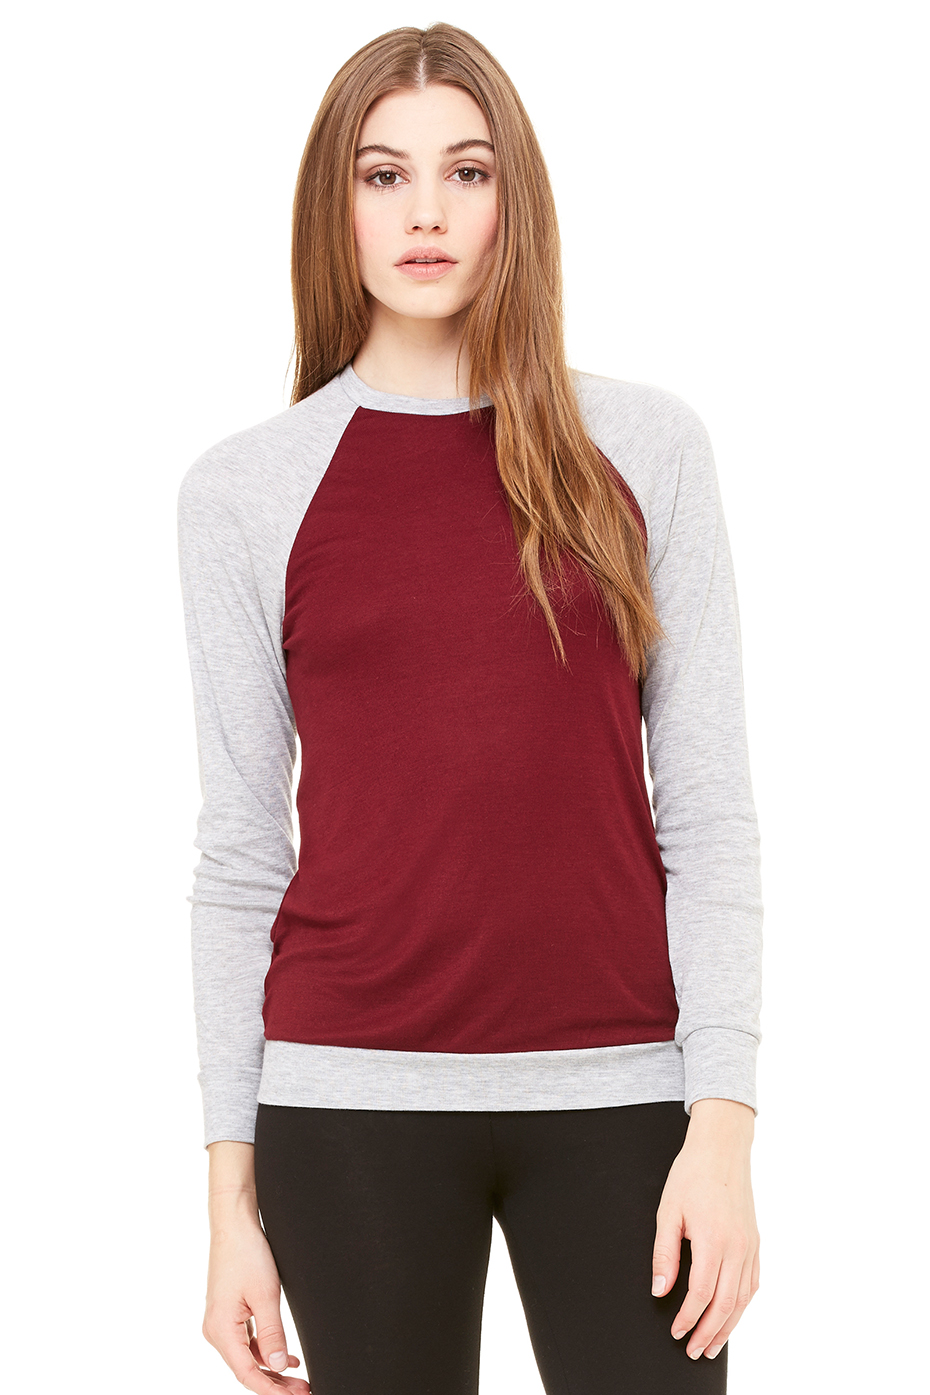 Unisex Lightweight Sweater | Bella-Canvas